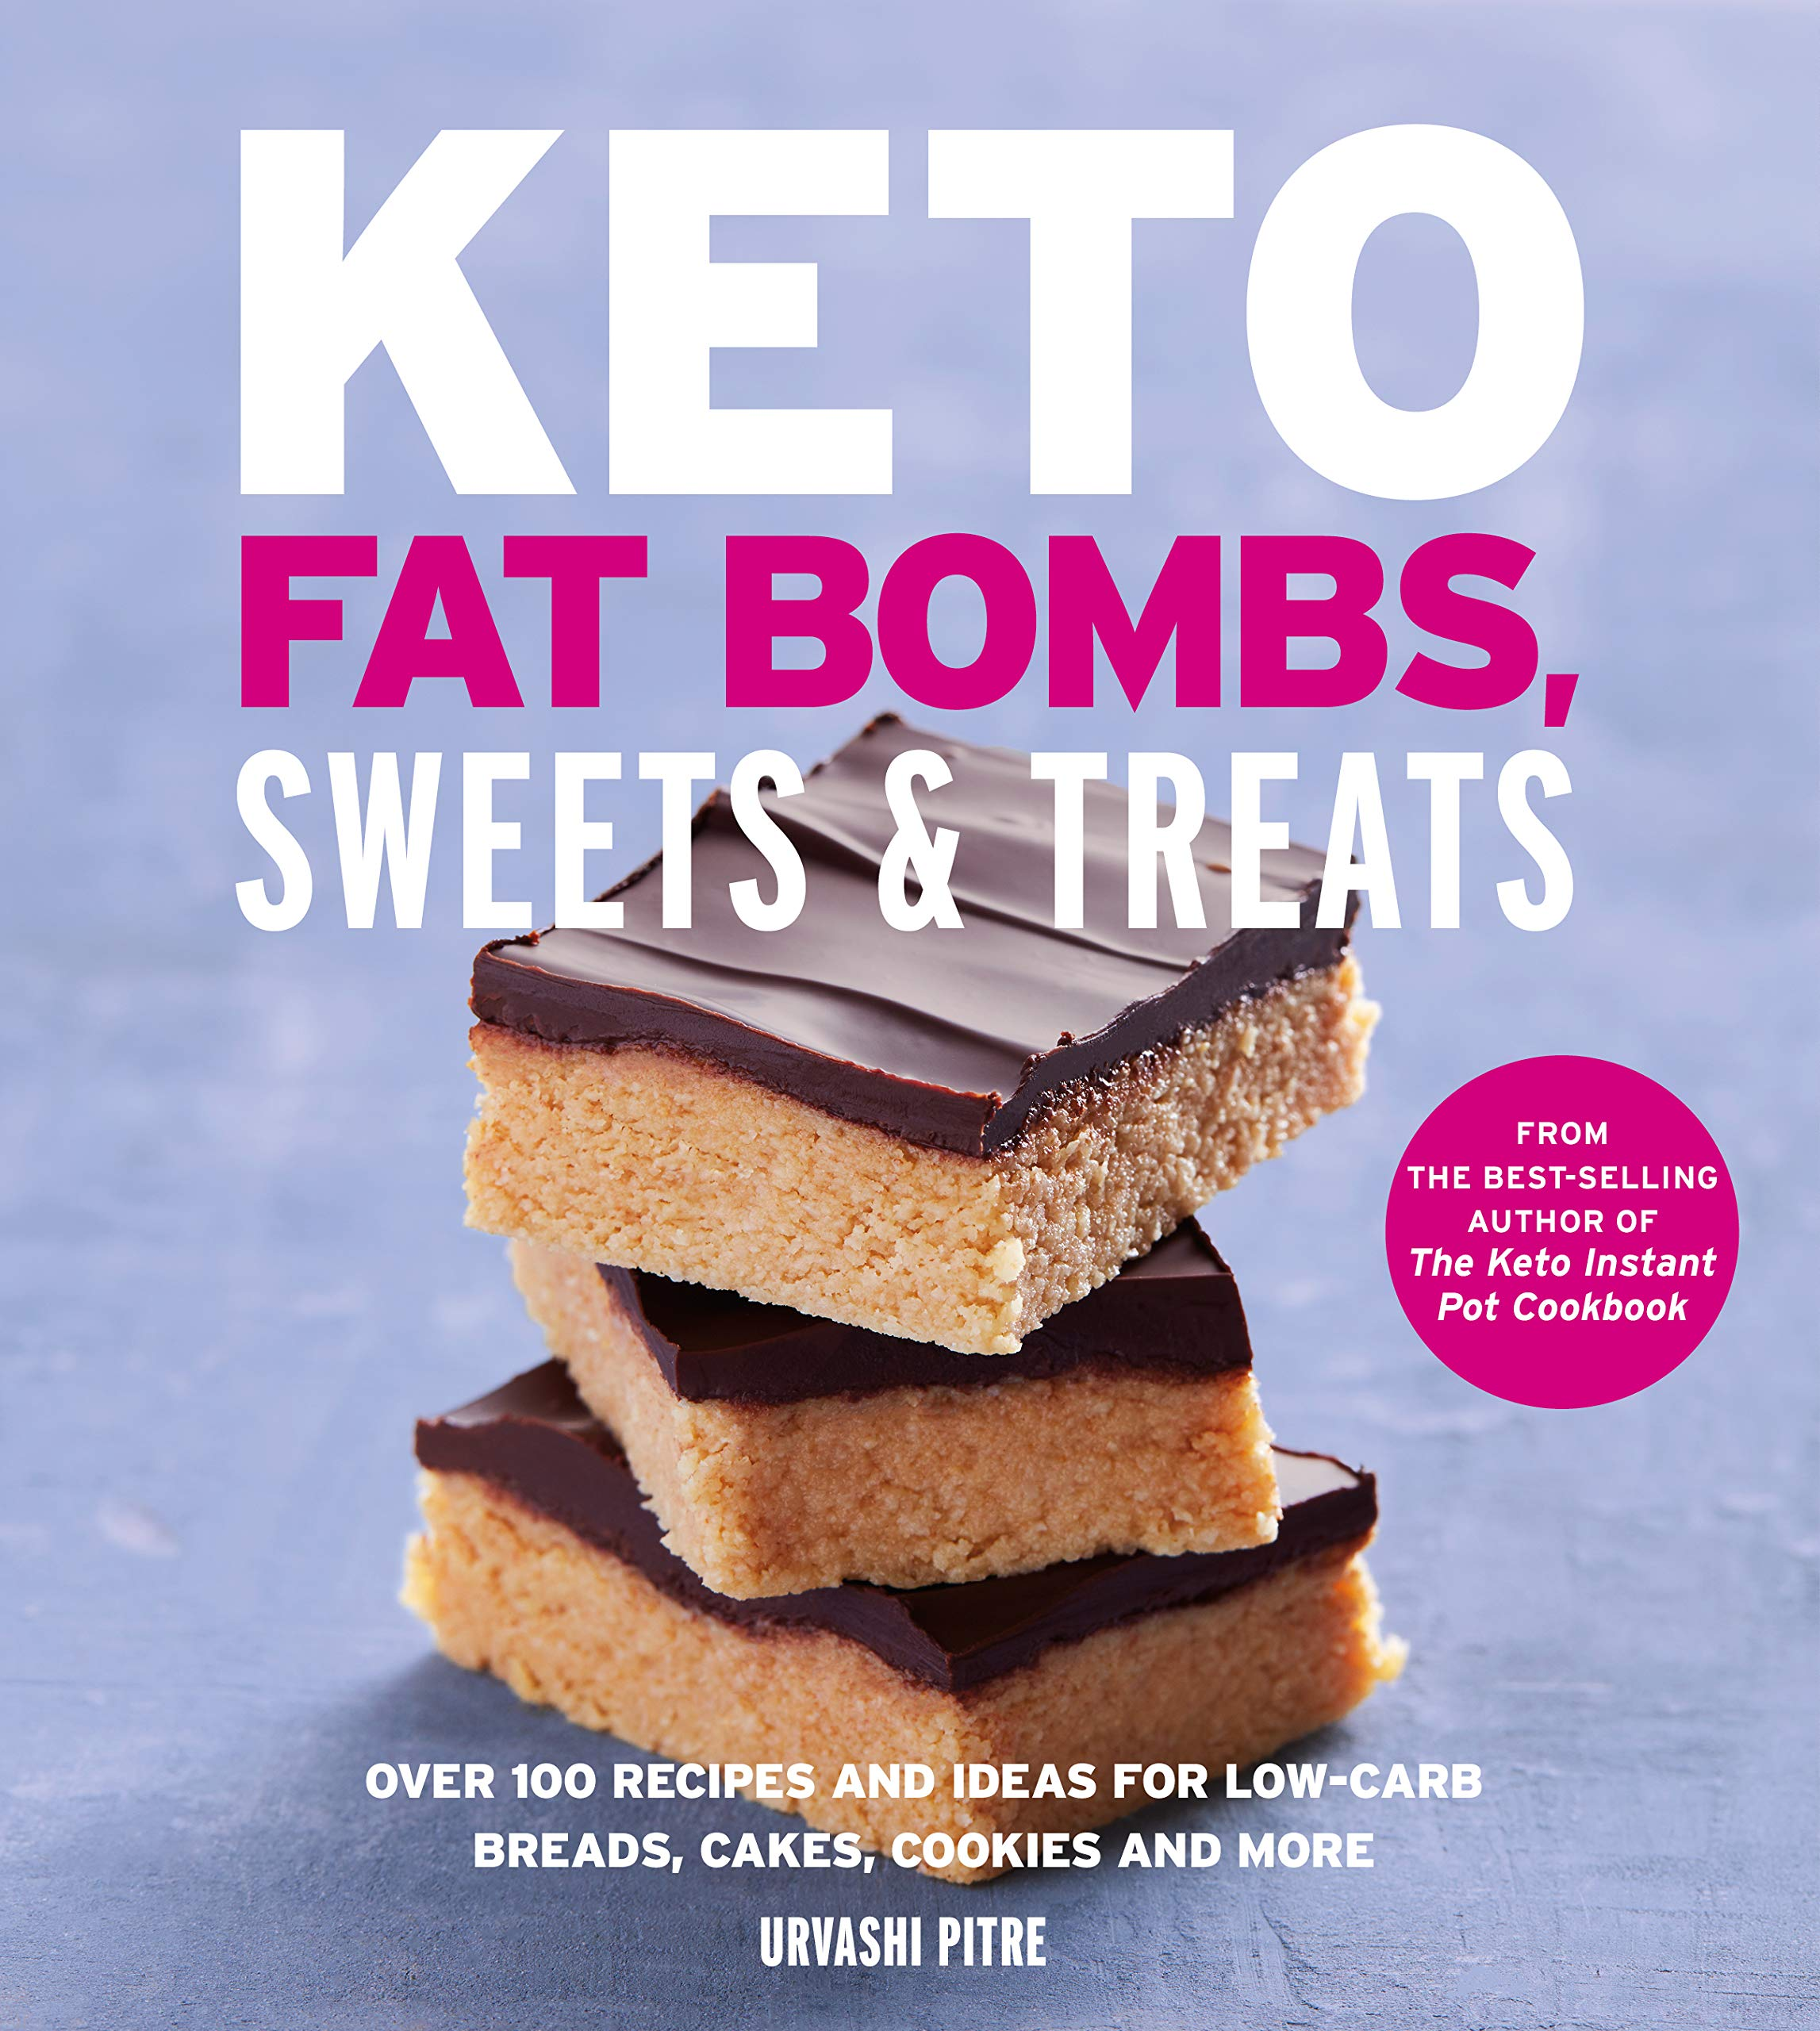 Amazon Keto-Friendly Dessert Recipes  Keto Sweets Deals